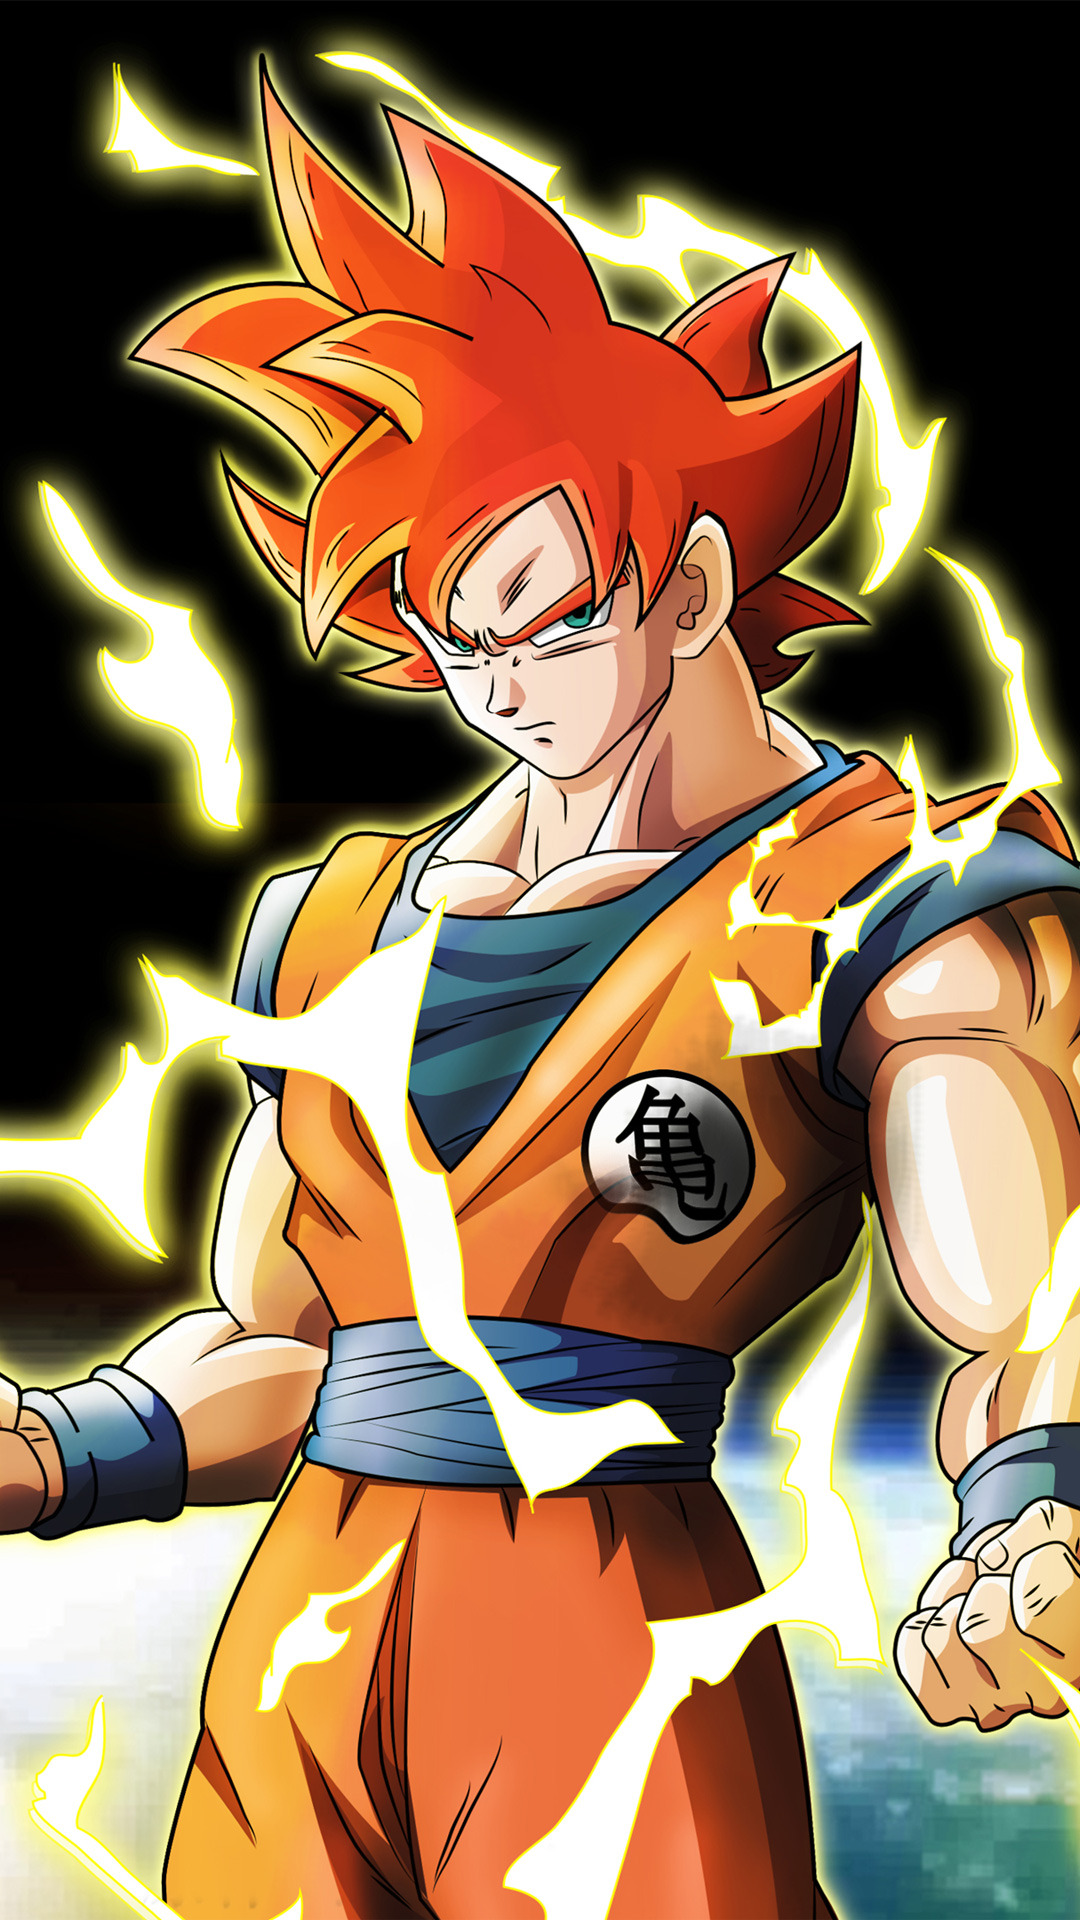 Android Anime Background For Mobile Dragon Ball Z Wallpapers Hd For Mobile 1080x1920 Download Hd Wallpaper Wallpapertip